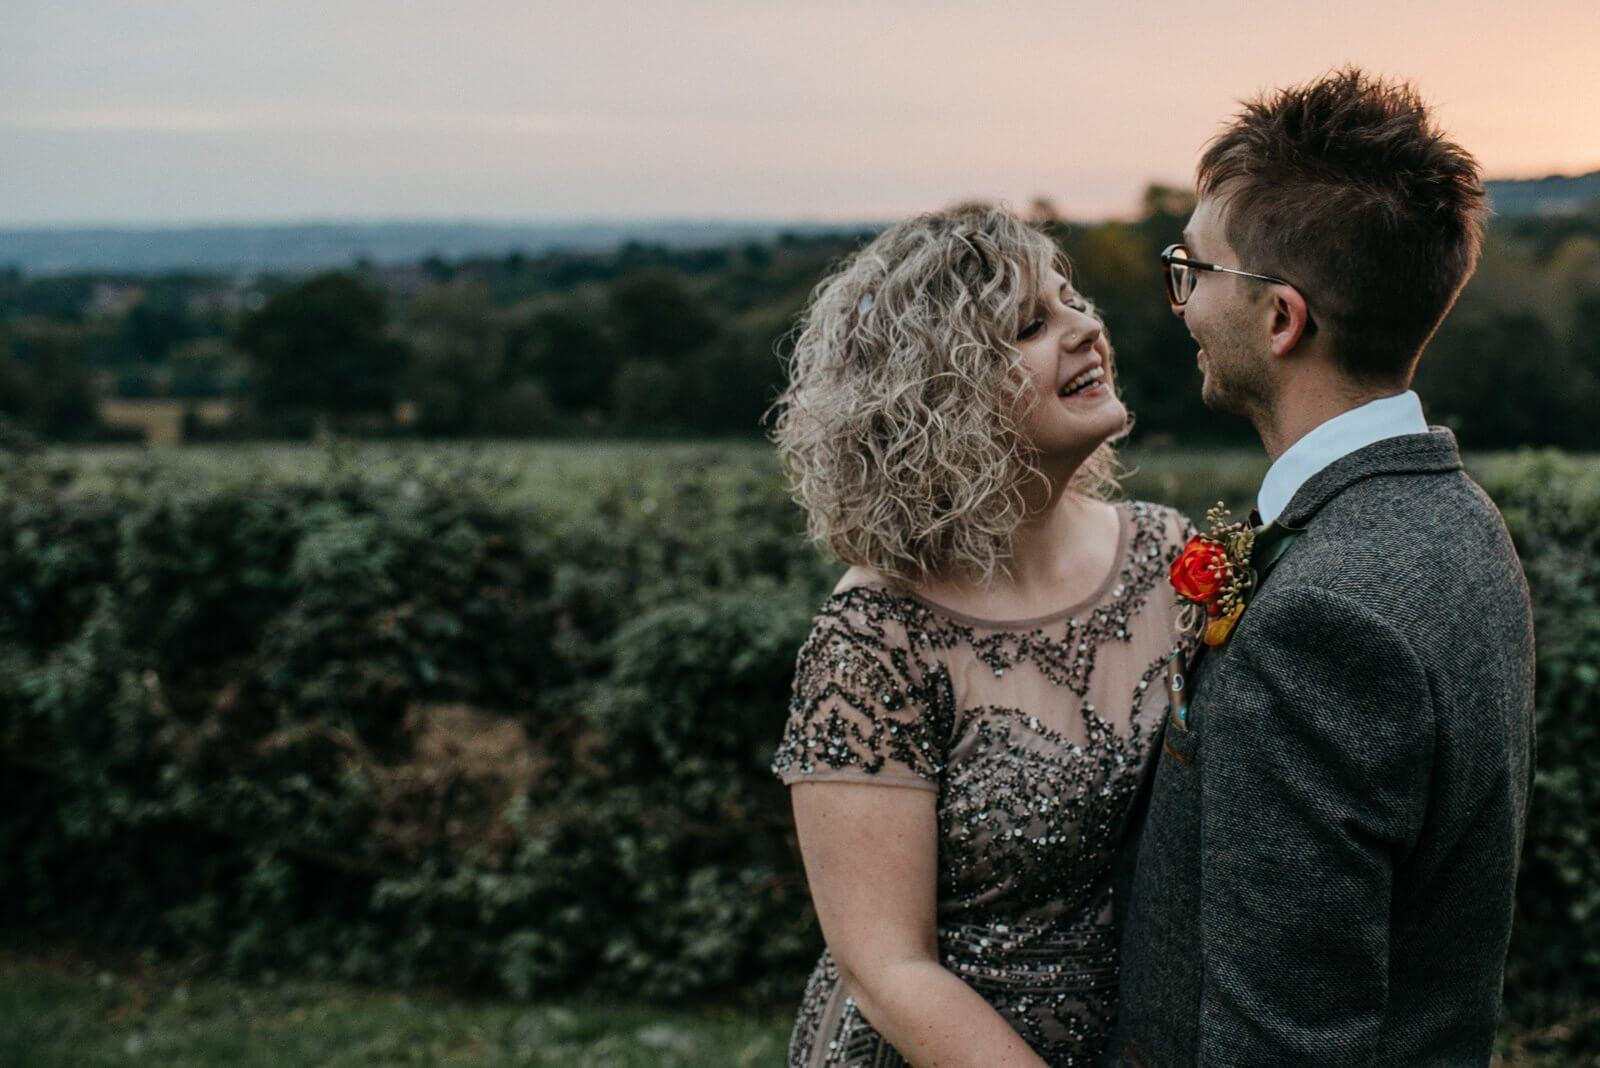 Bride wearing a sequin embellished gown smiling at her groom infront of rural landscape and autumn sunset at Ty Mawr, Cardiff